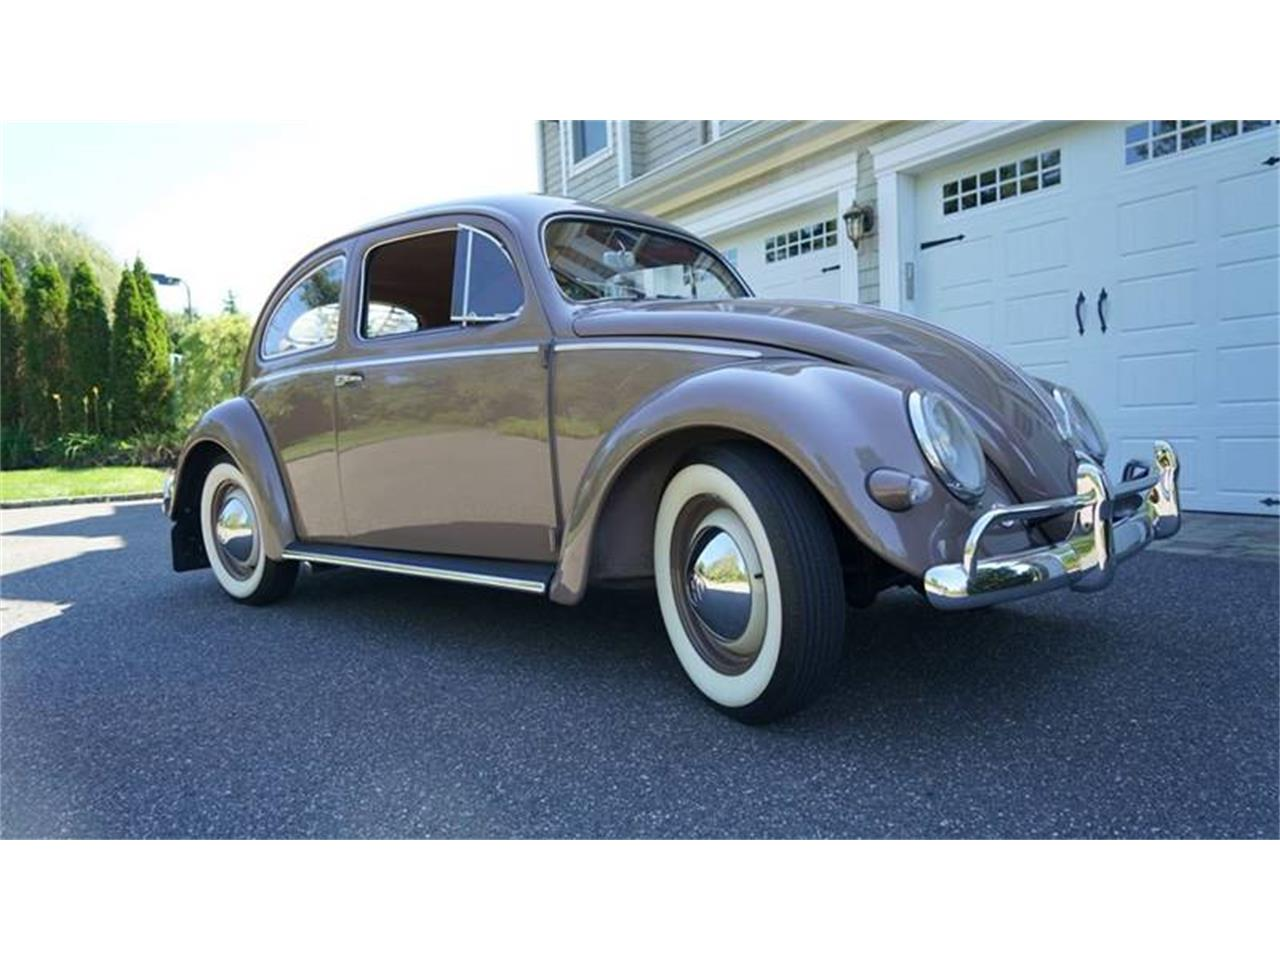 Large Picture of '55 Volkswagen Beetle located in New York - $37,500.00 Offered by Fiore Motor Classics - OVOE